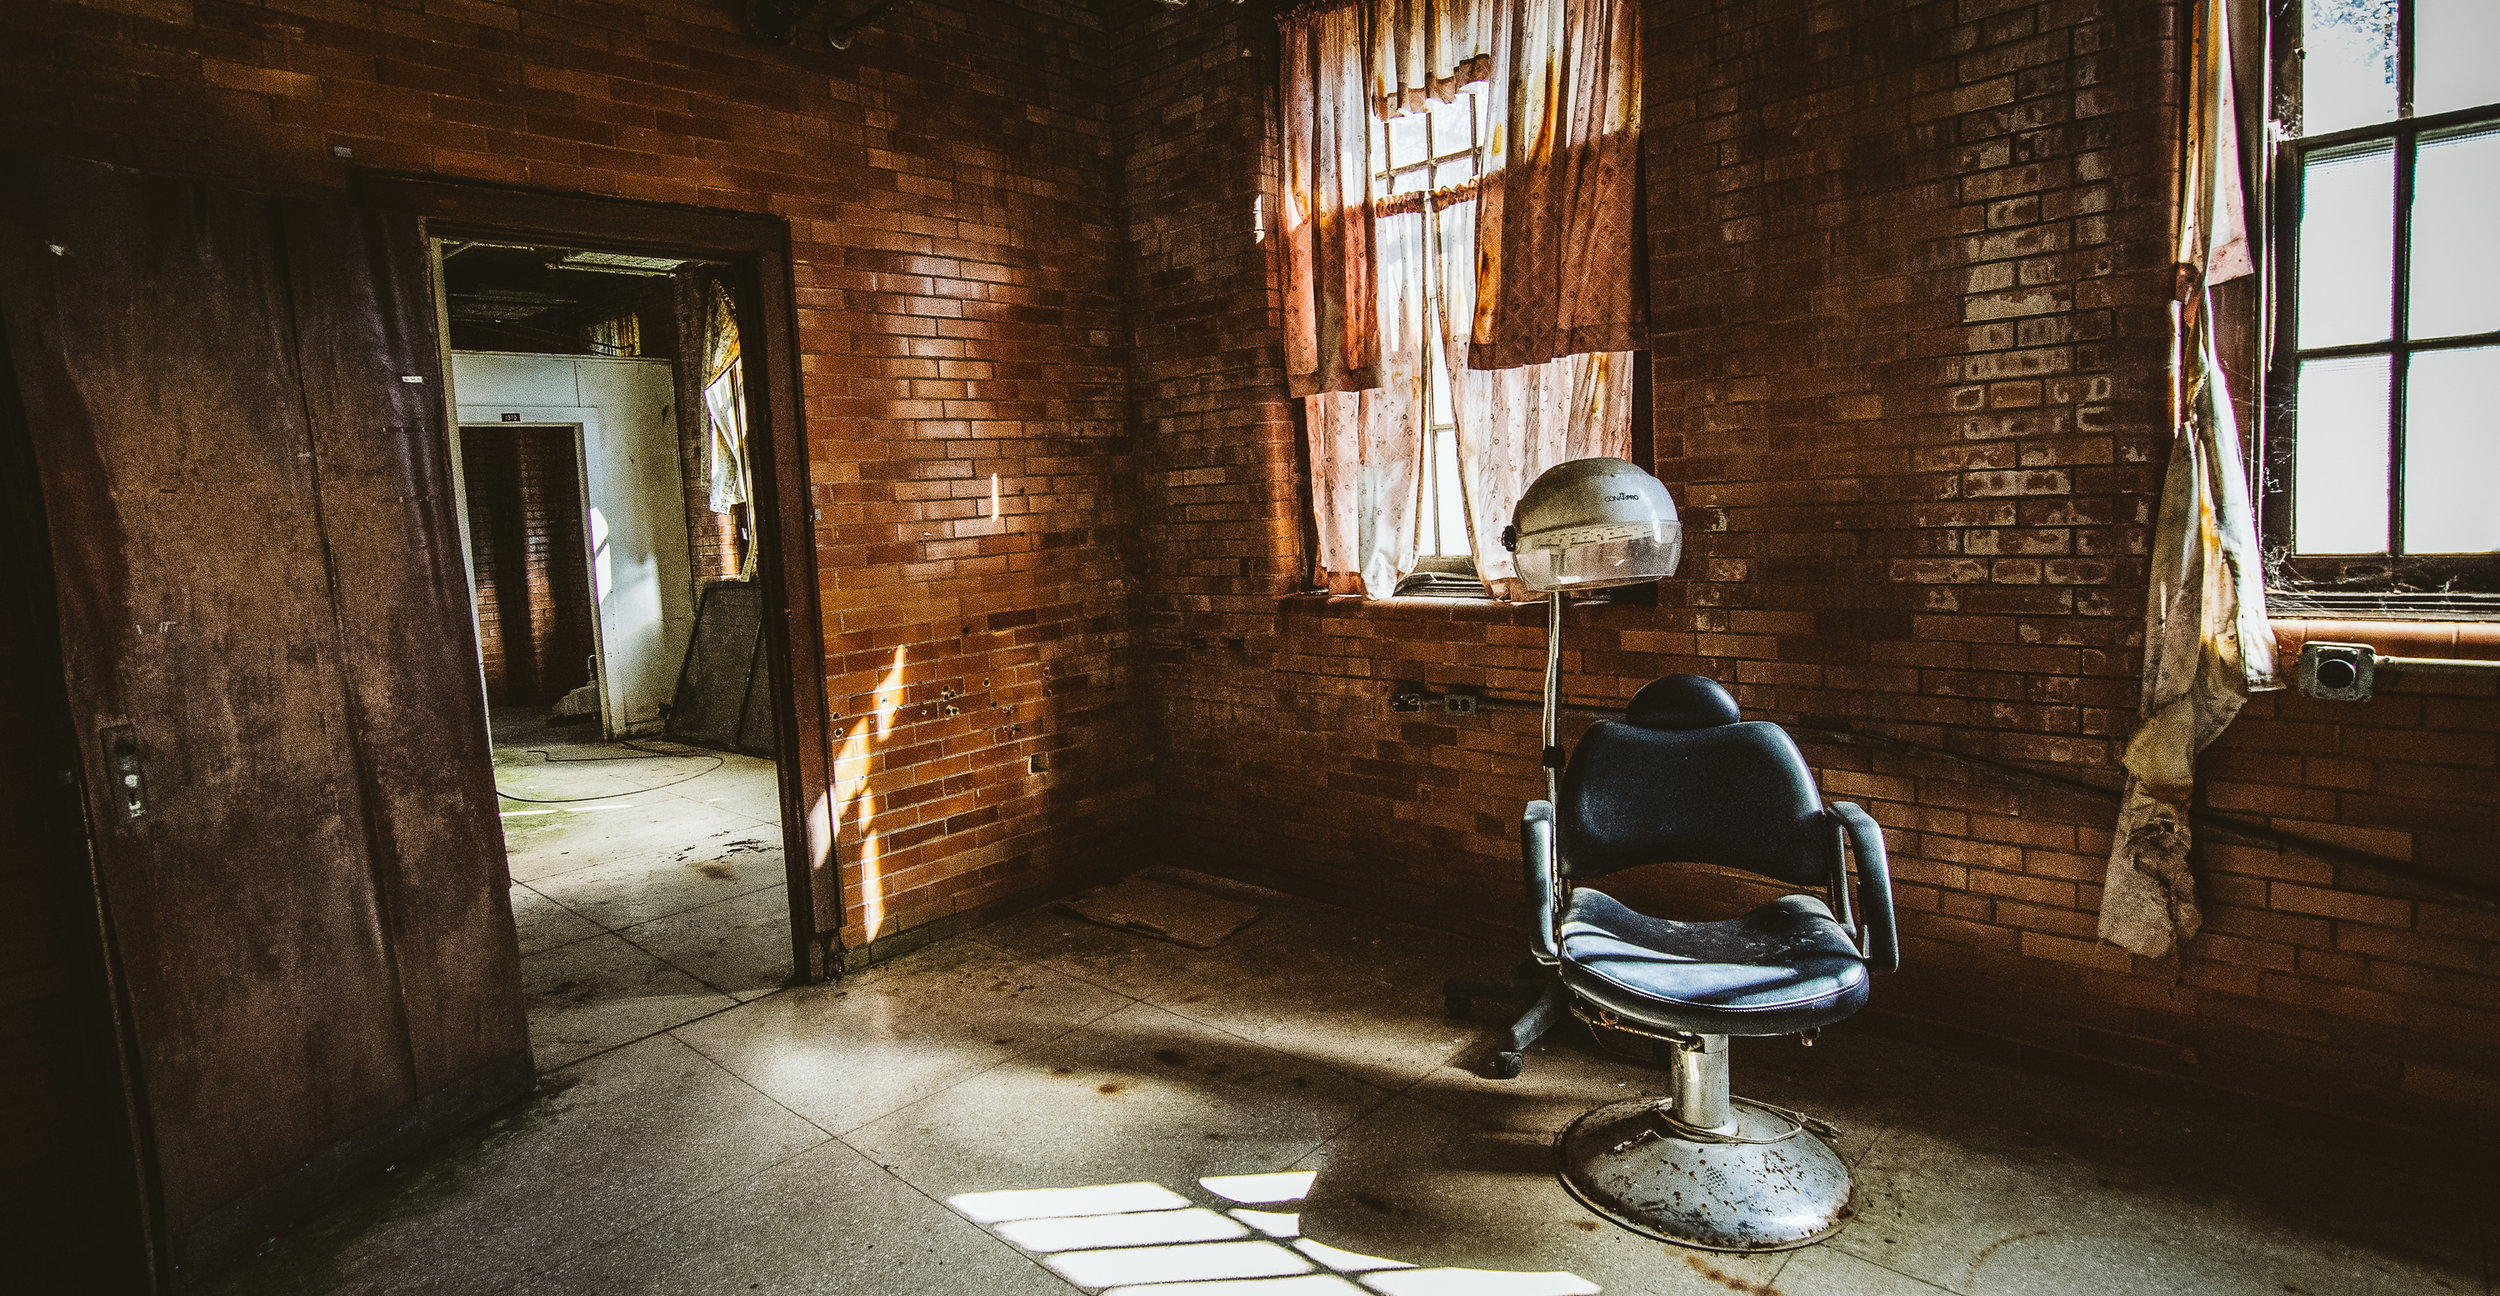 The barber shop in the medical building.